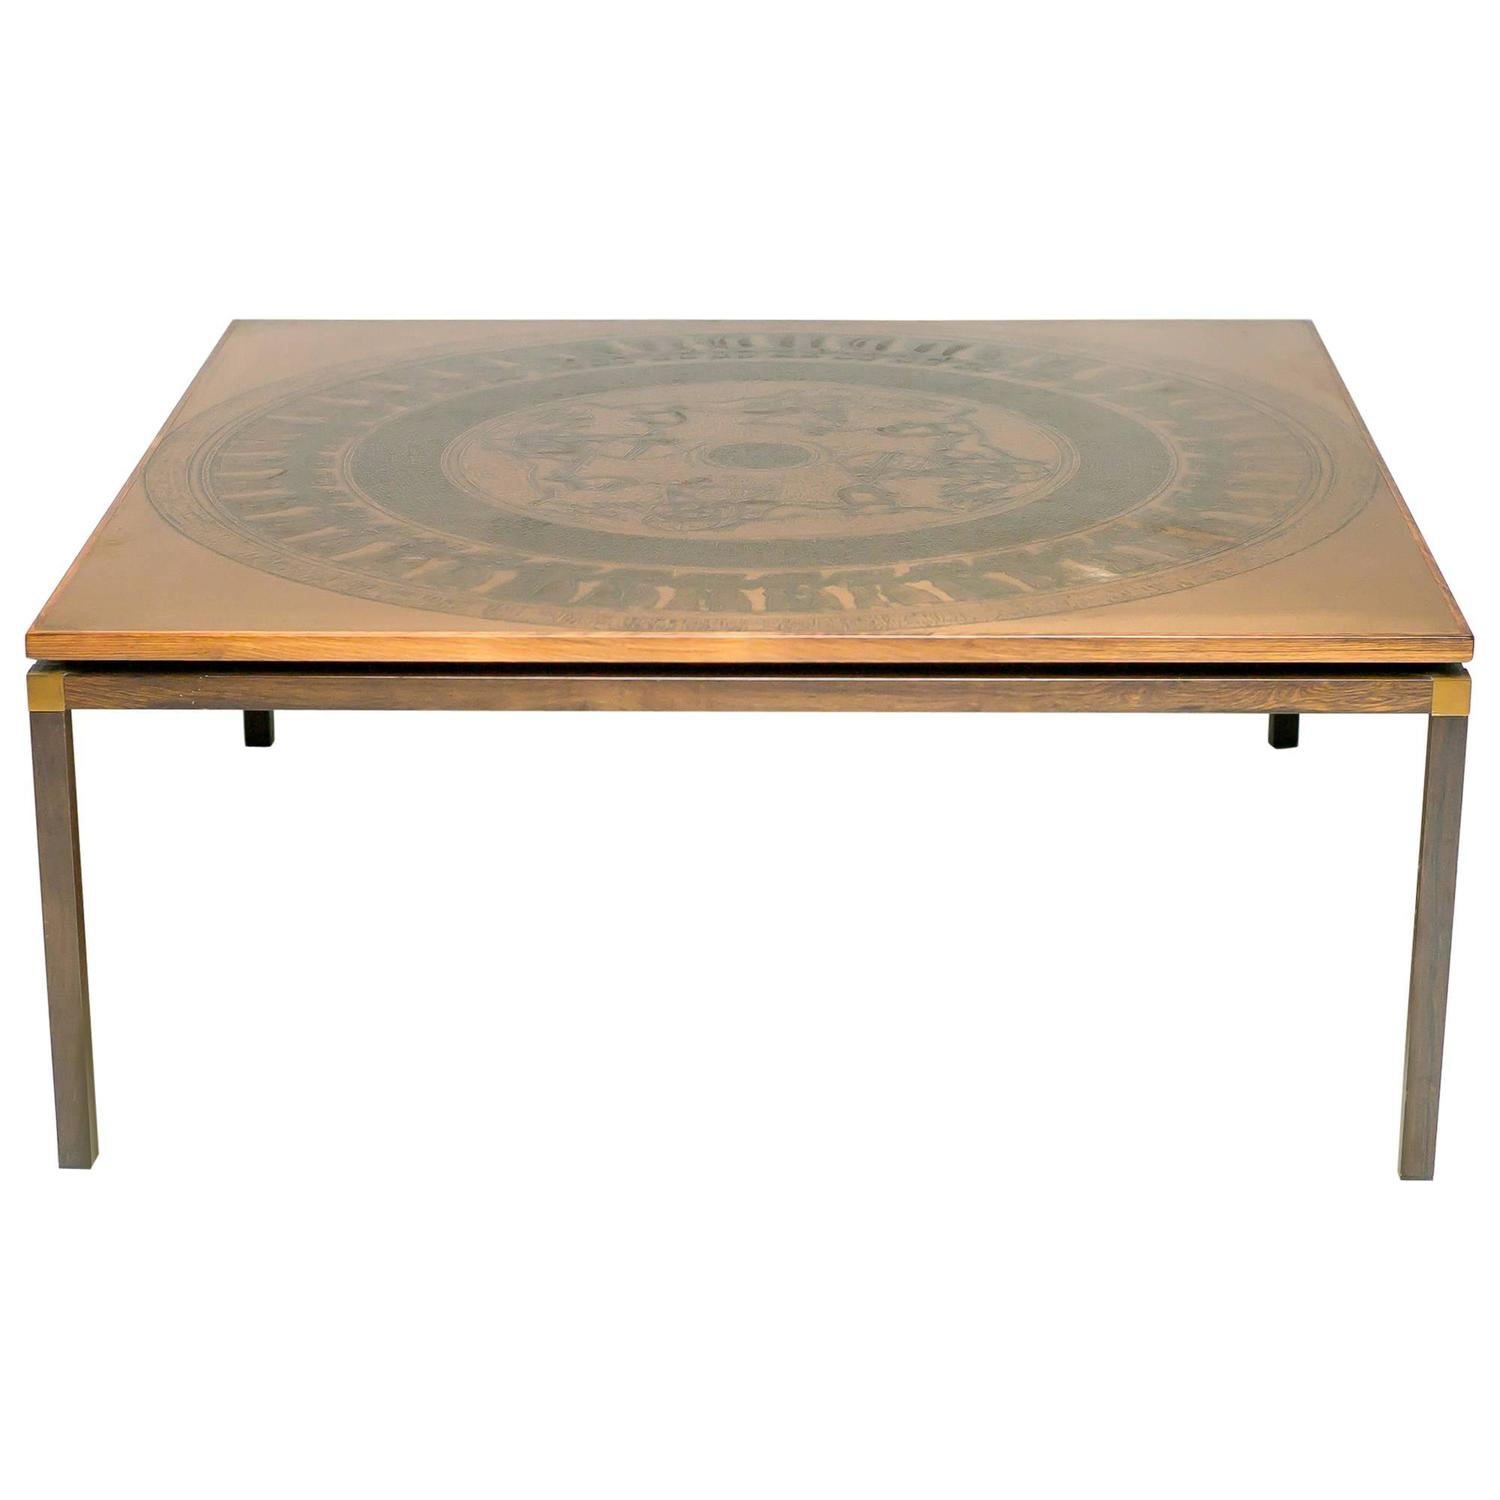 Rosewood And Copper Coffee Table Denmark Circa 1970 For Sale At 1stdibs